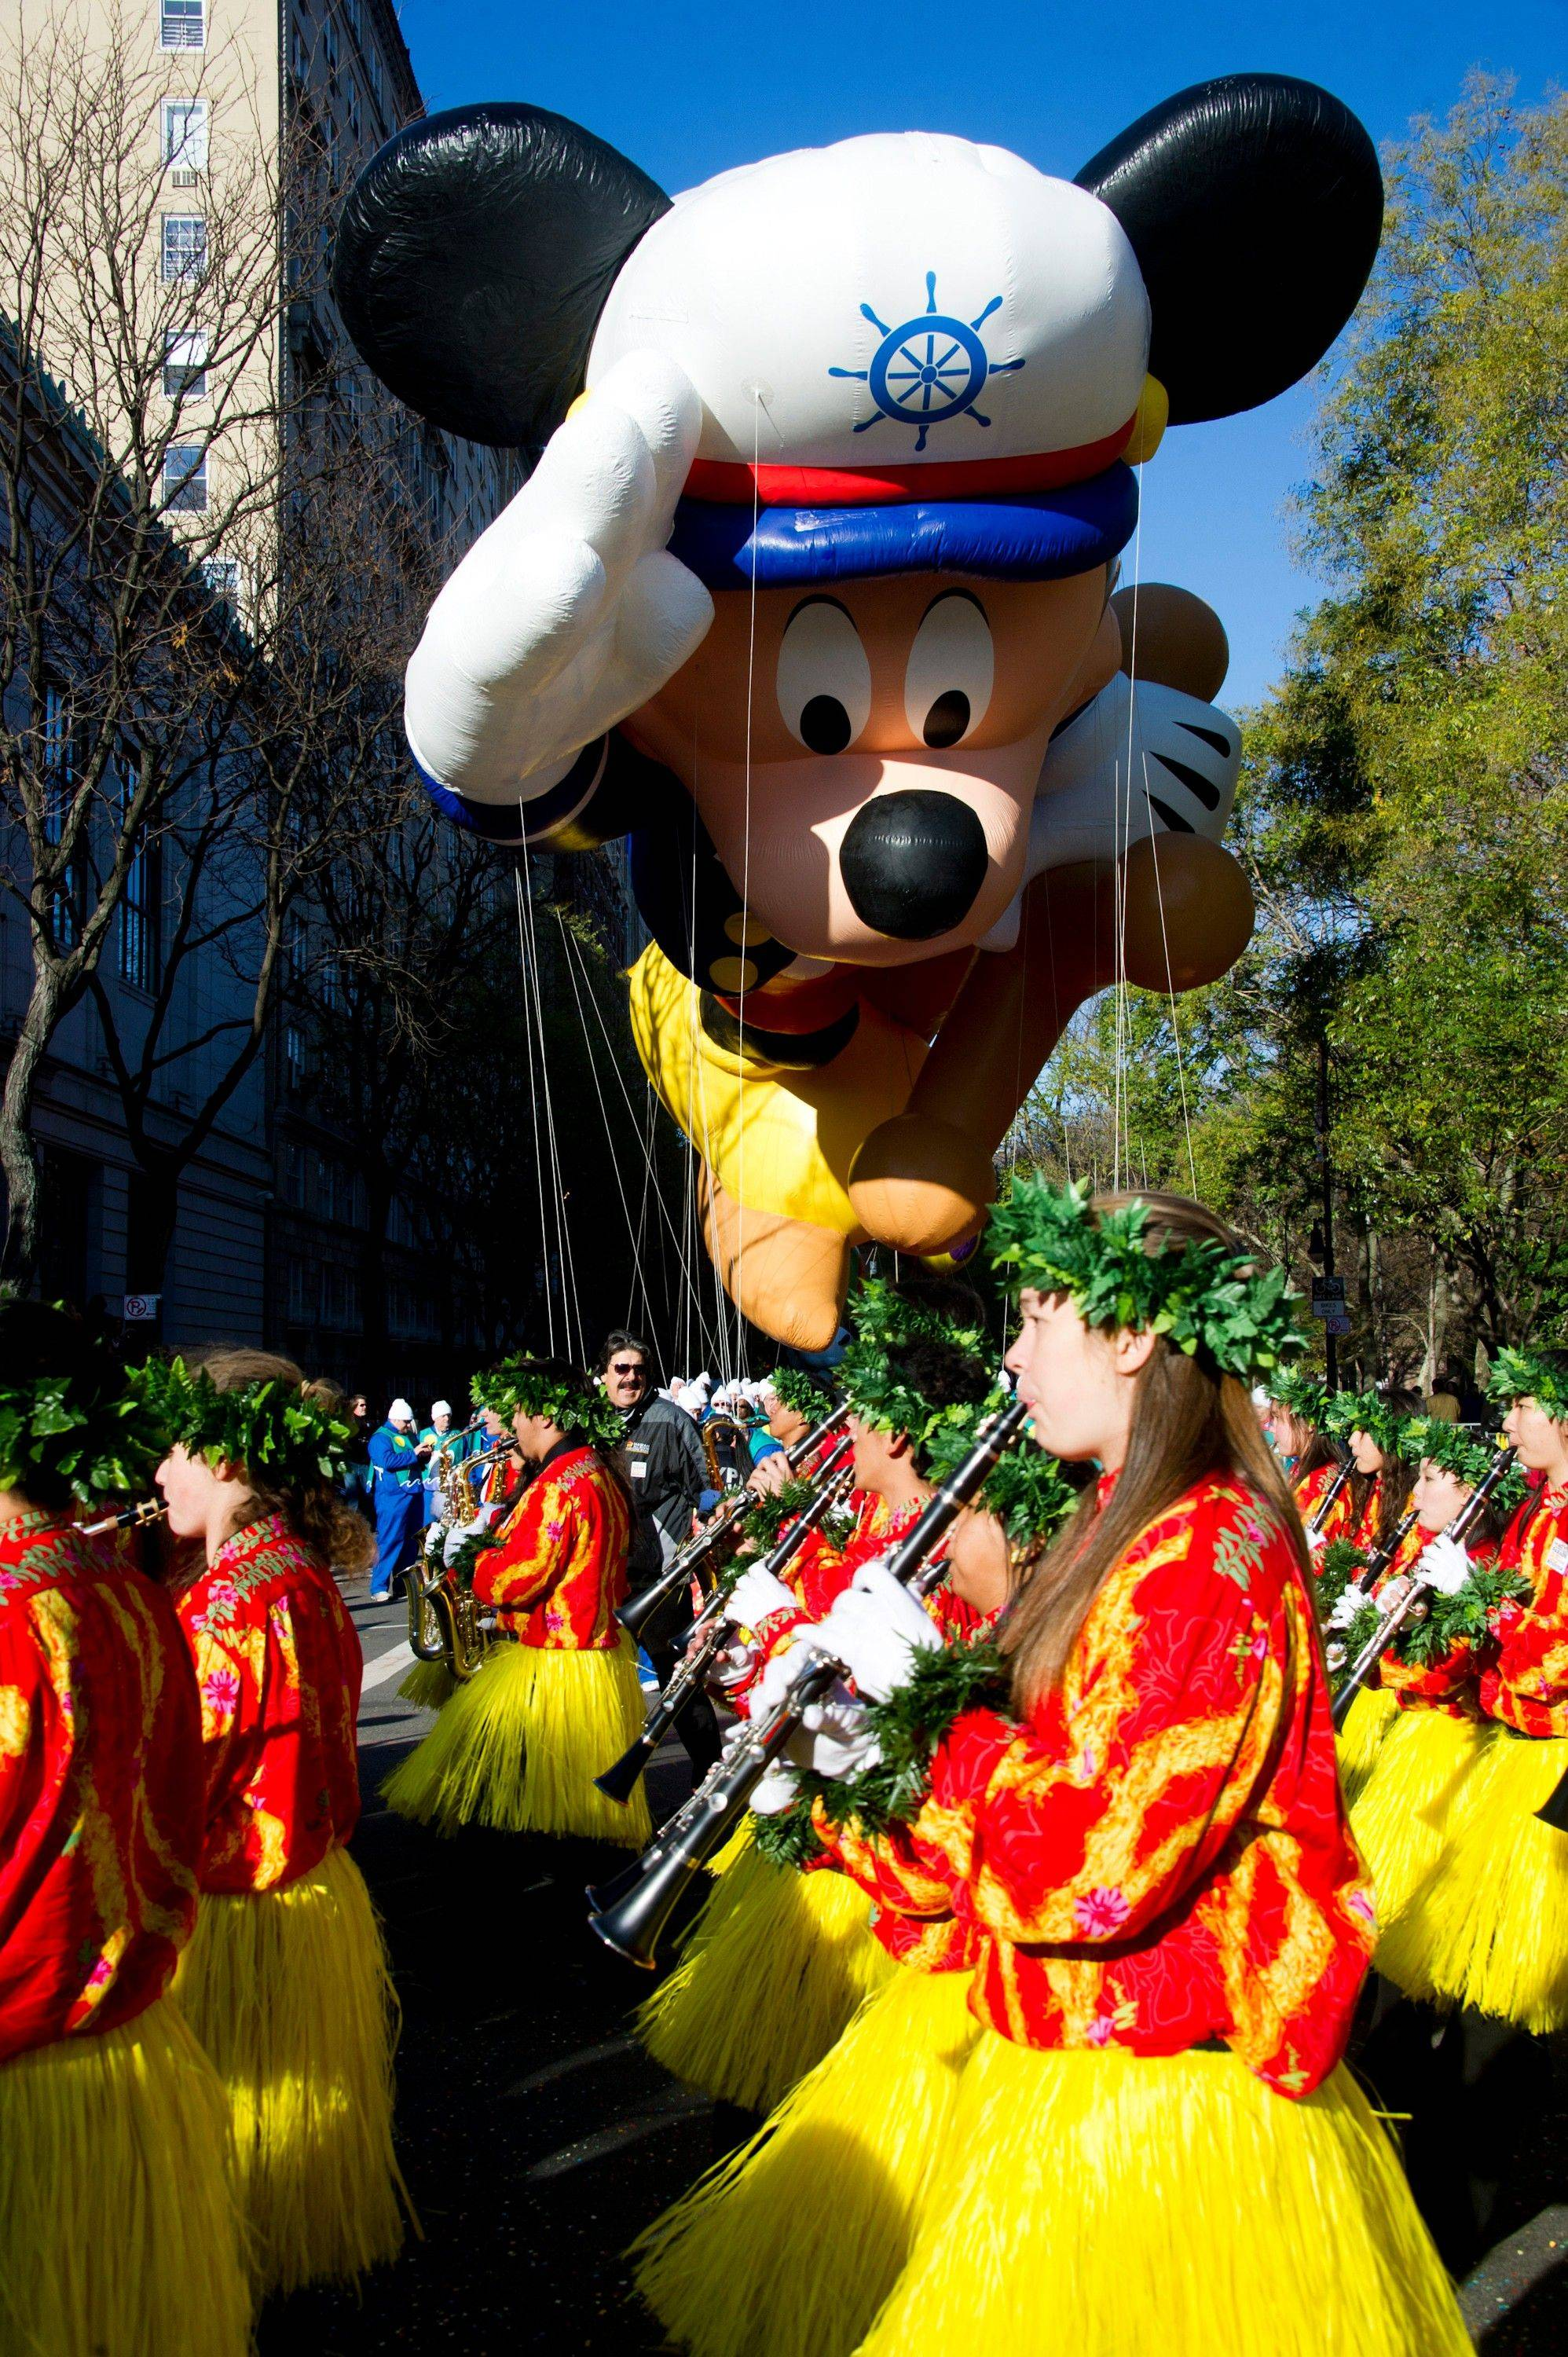 The Sailor Mickey balloon floats in the Macy's Thanksgiving Day Parade in New York, Thursday, Nov. 24, 2011.